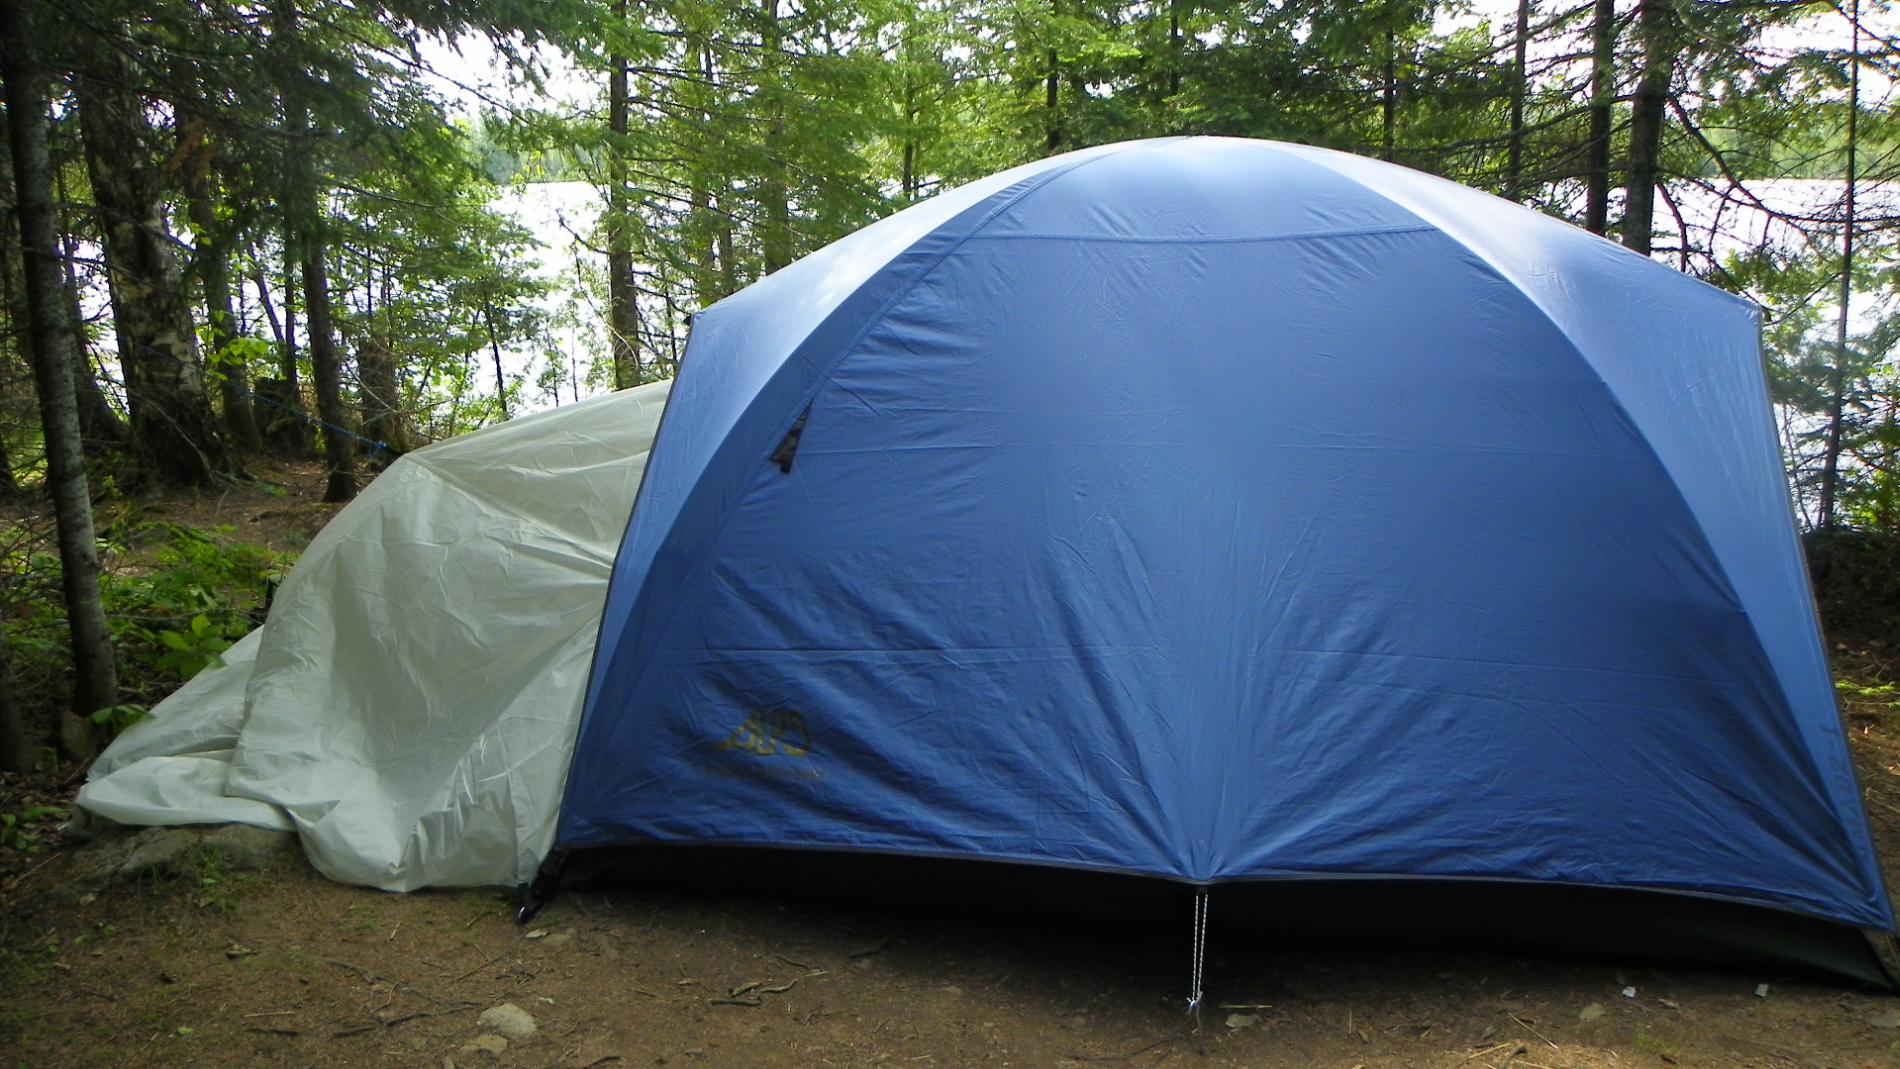 Another view of tent with vestibule